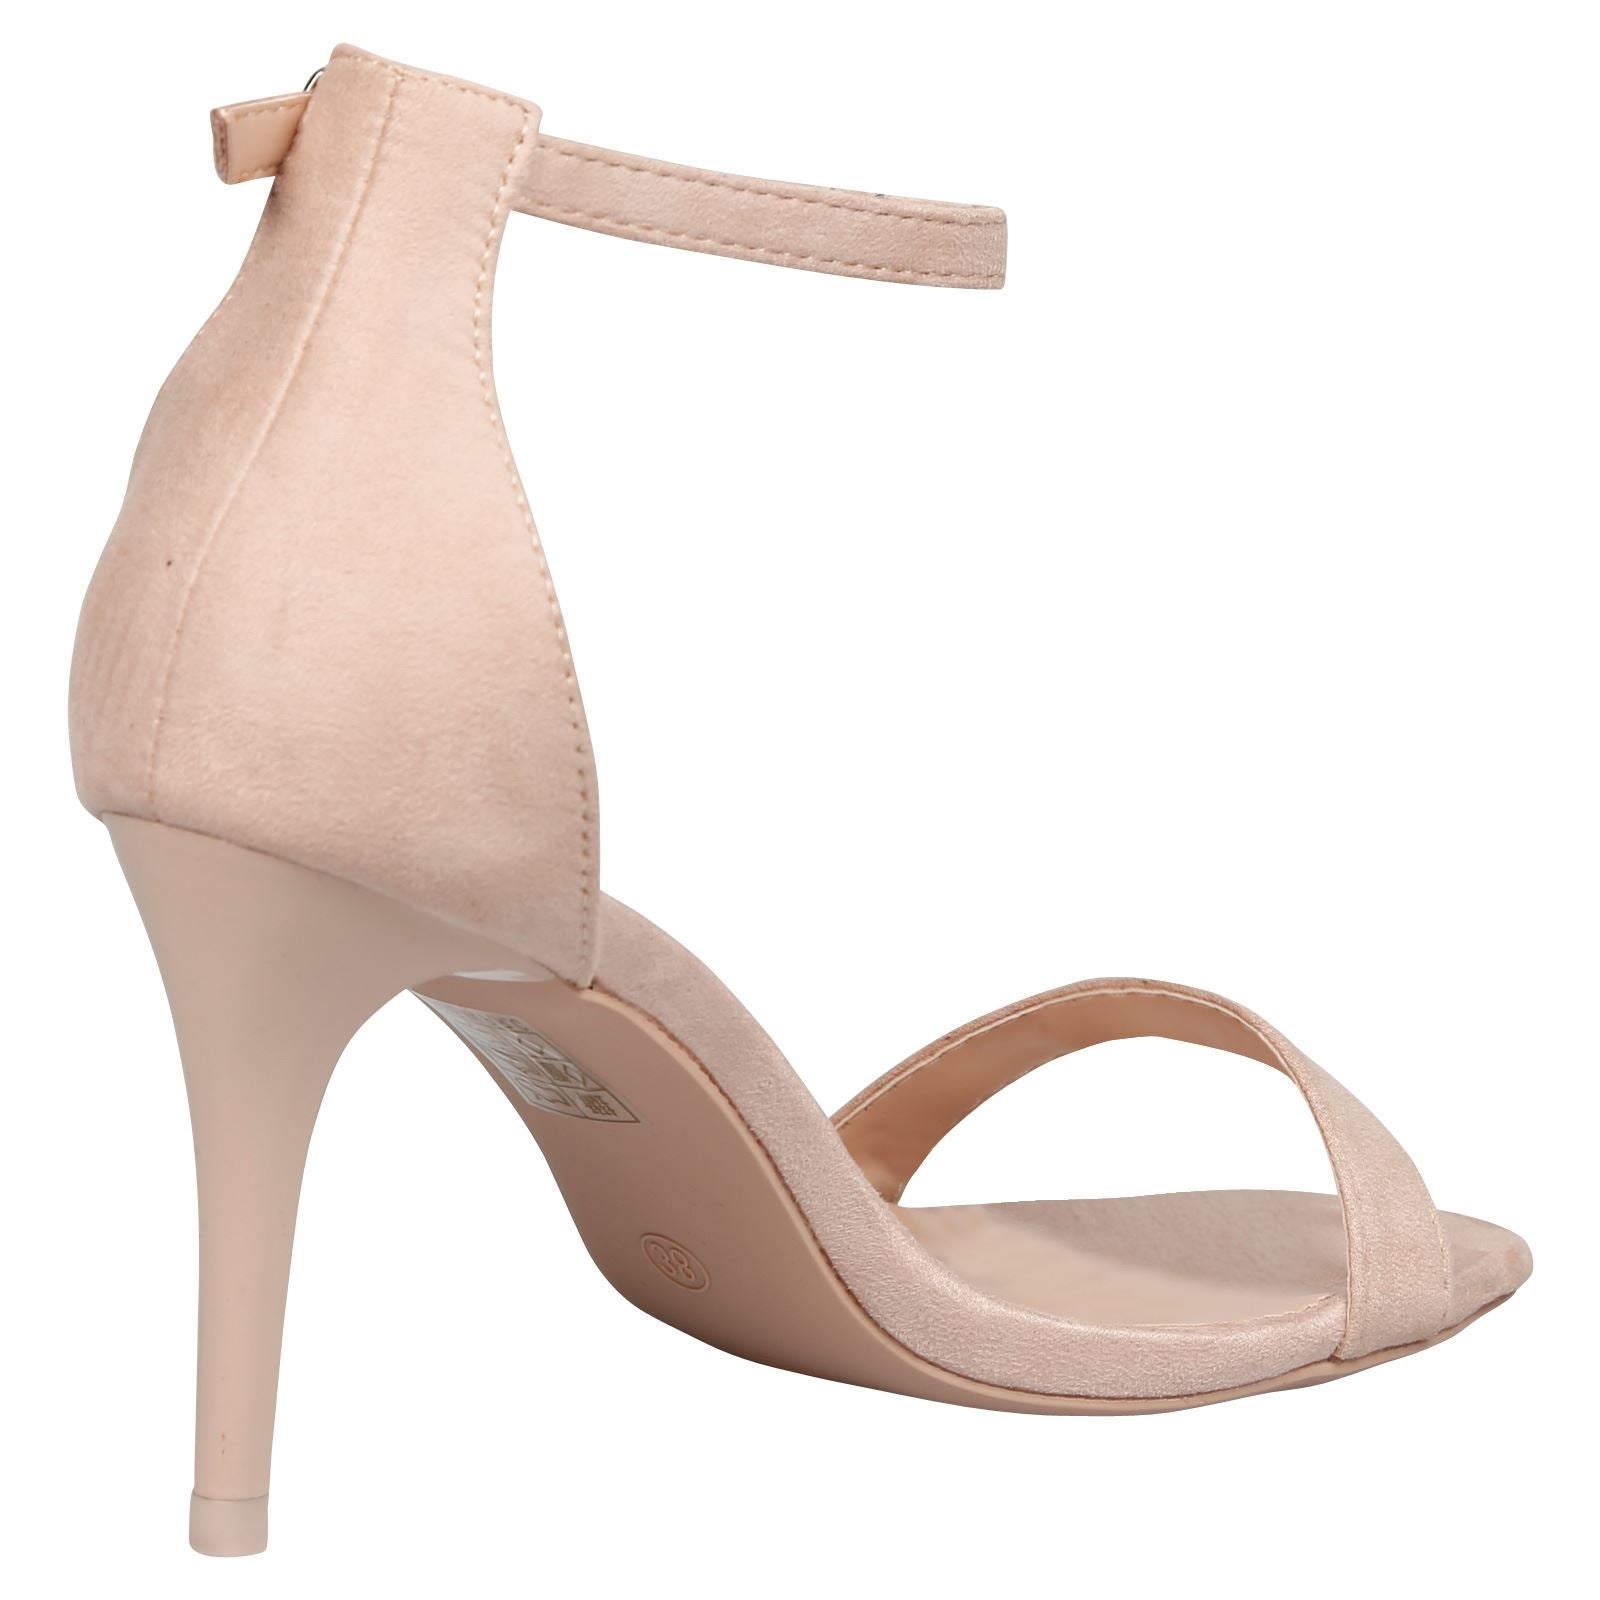 Ellen Stiletto Heel Ankle Strap Sandals in Beige Faux Suede